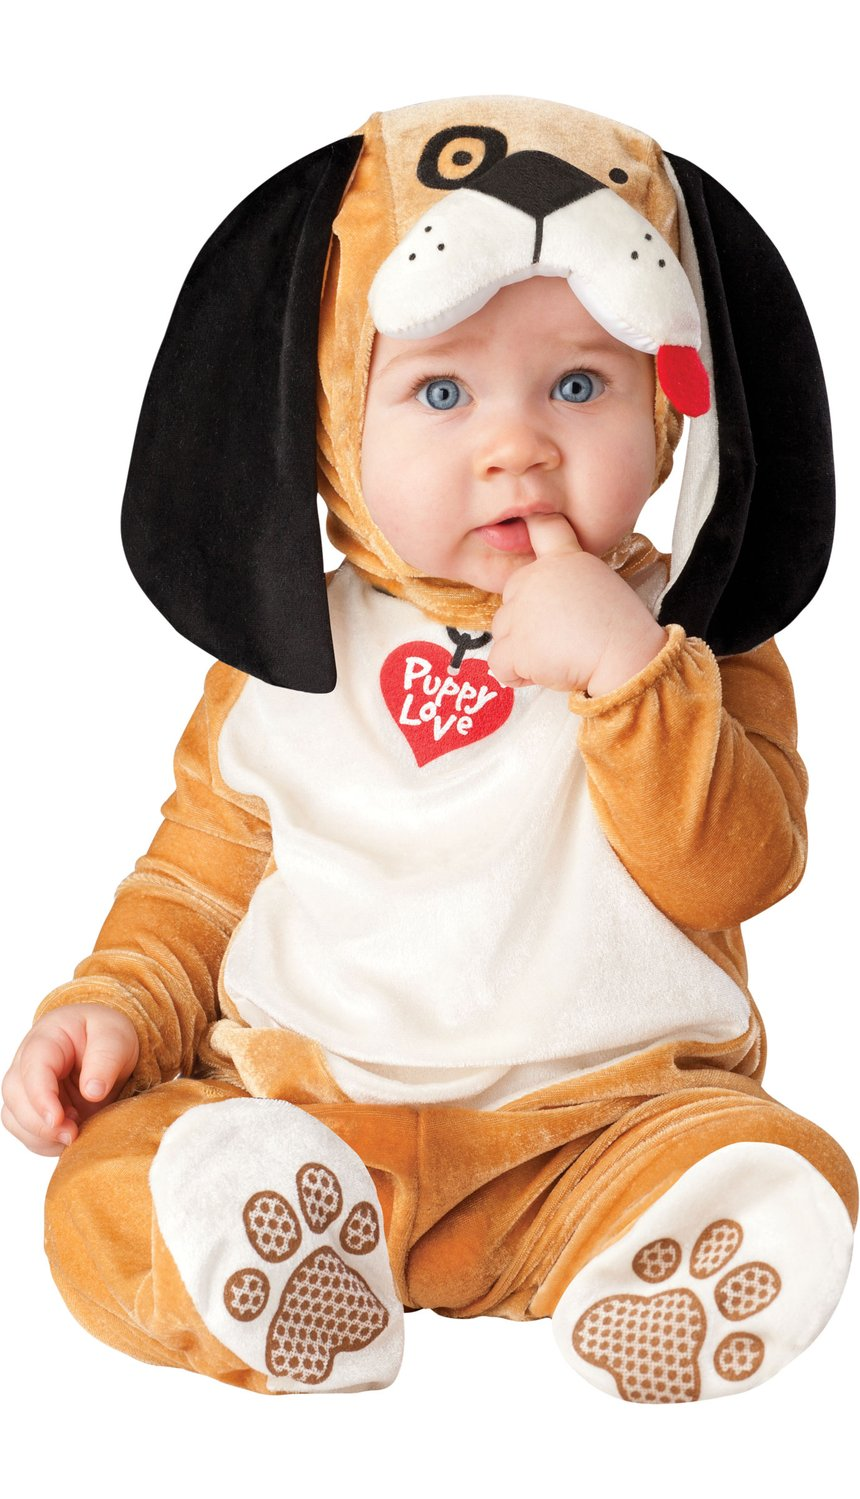 Baby Animal Suits, Wholesale Various High Quality Baby Animal Suits Products from Global Baby Animal Suits Suppliers and Baby Animal Suits Factory,Importer,Exporter at coolvloadx4.ga